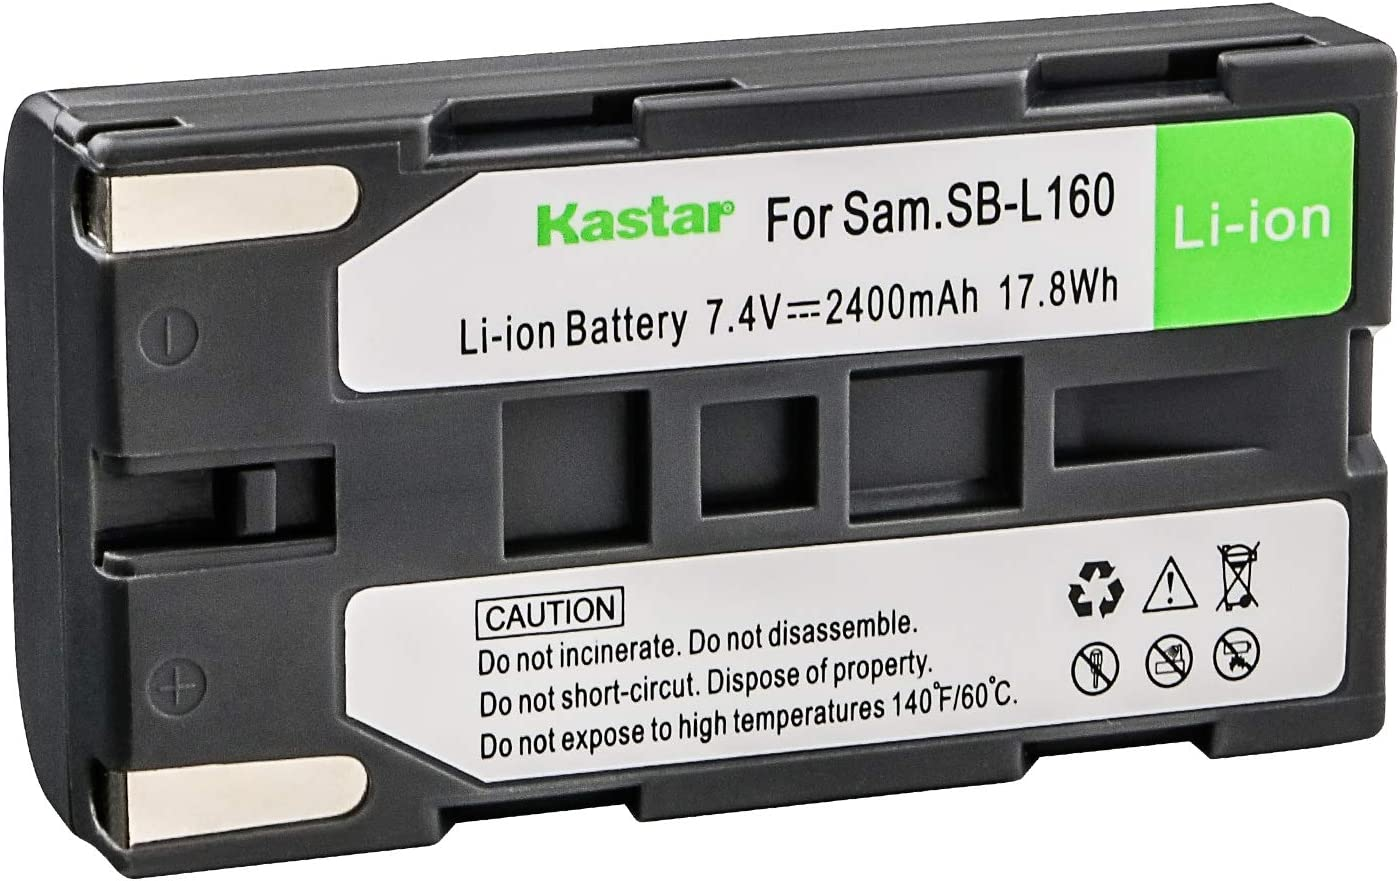 Kastar Camcorder Battery Replacement for Samsung SB-L110A SB-L160 SB-L320 and Samsung SC-L Series SC-W Series VM-A Series VM-B Series VM-C Series VP-L Series VP-M Series VP-W Series Camcorder : Camera & Photo